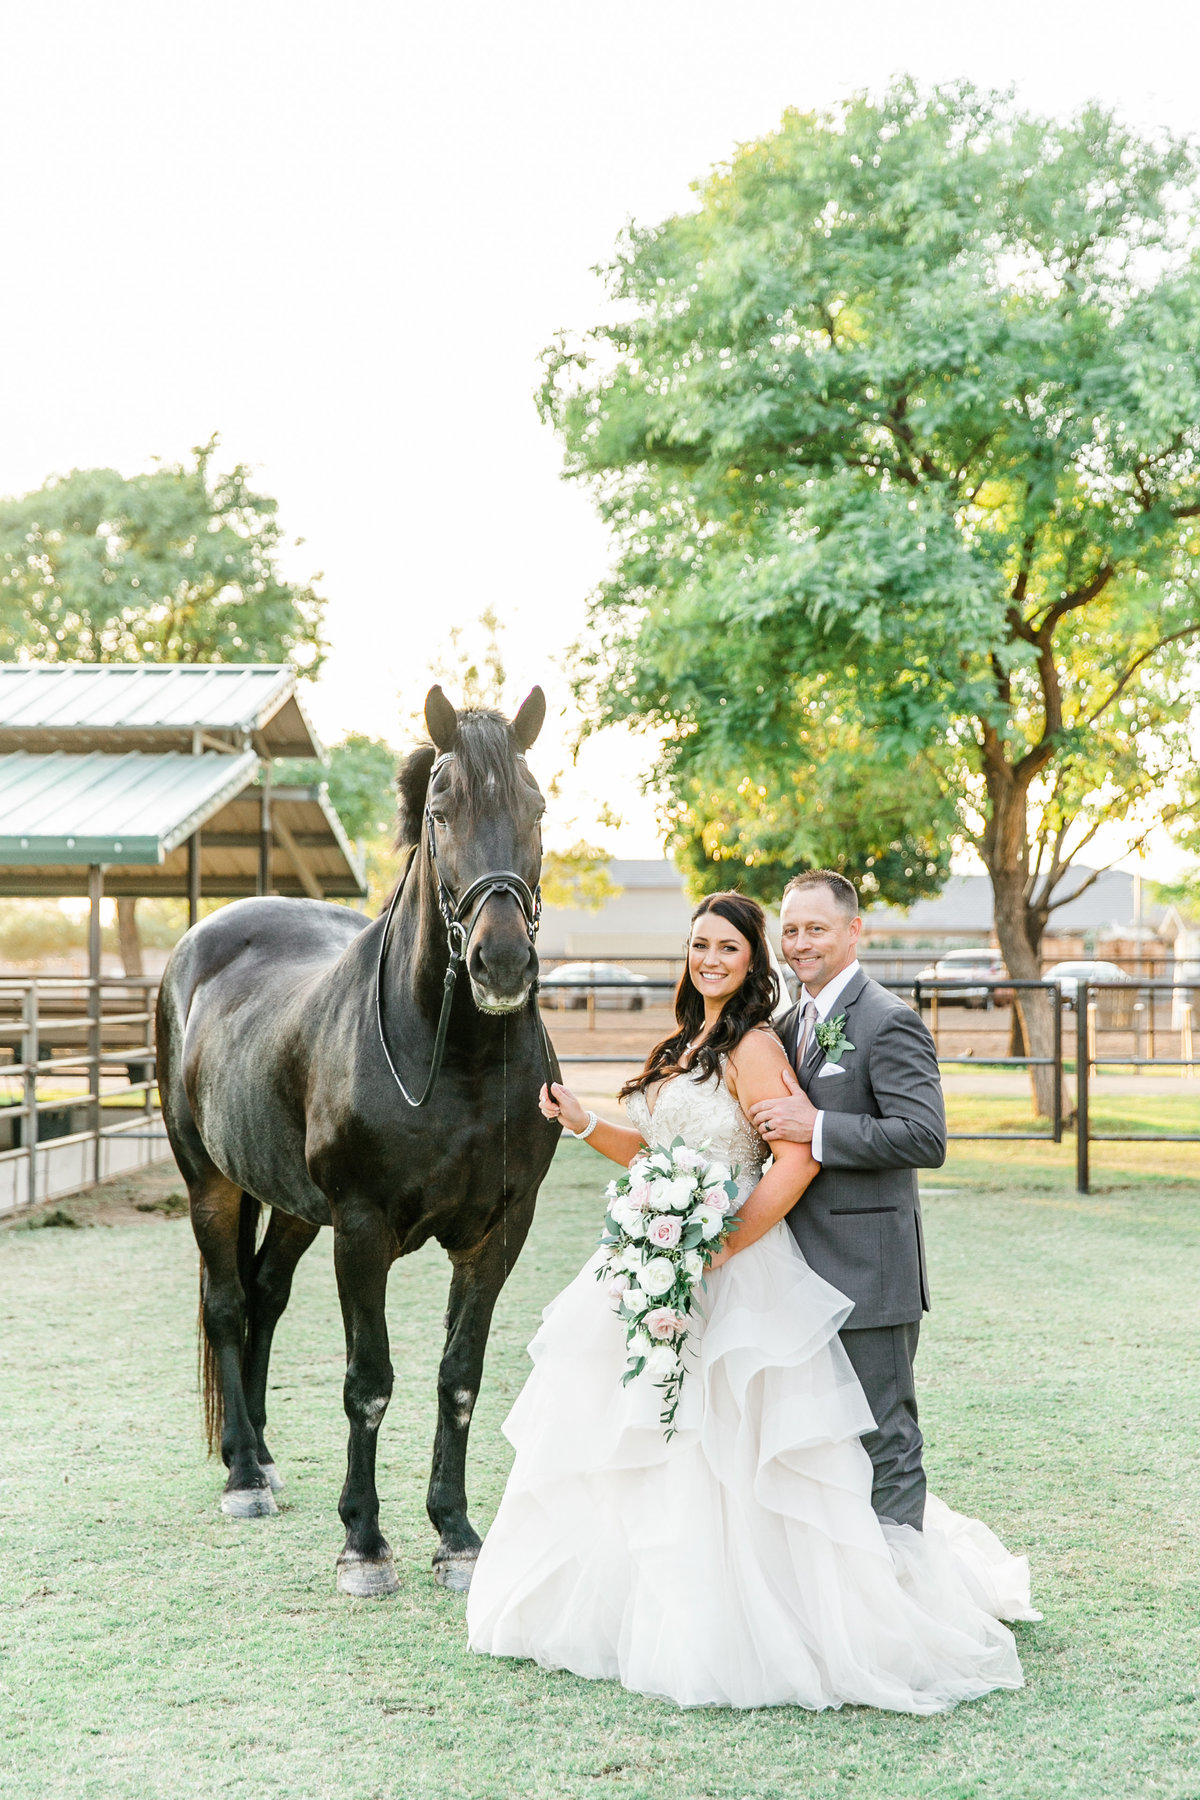 Karlie Colleen Photography - Glendale Arizona Backyard ranch wedding - Meghan & Ken-486